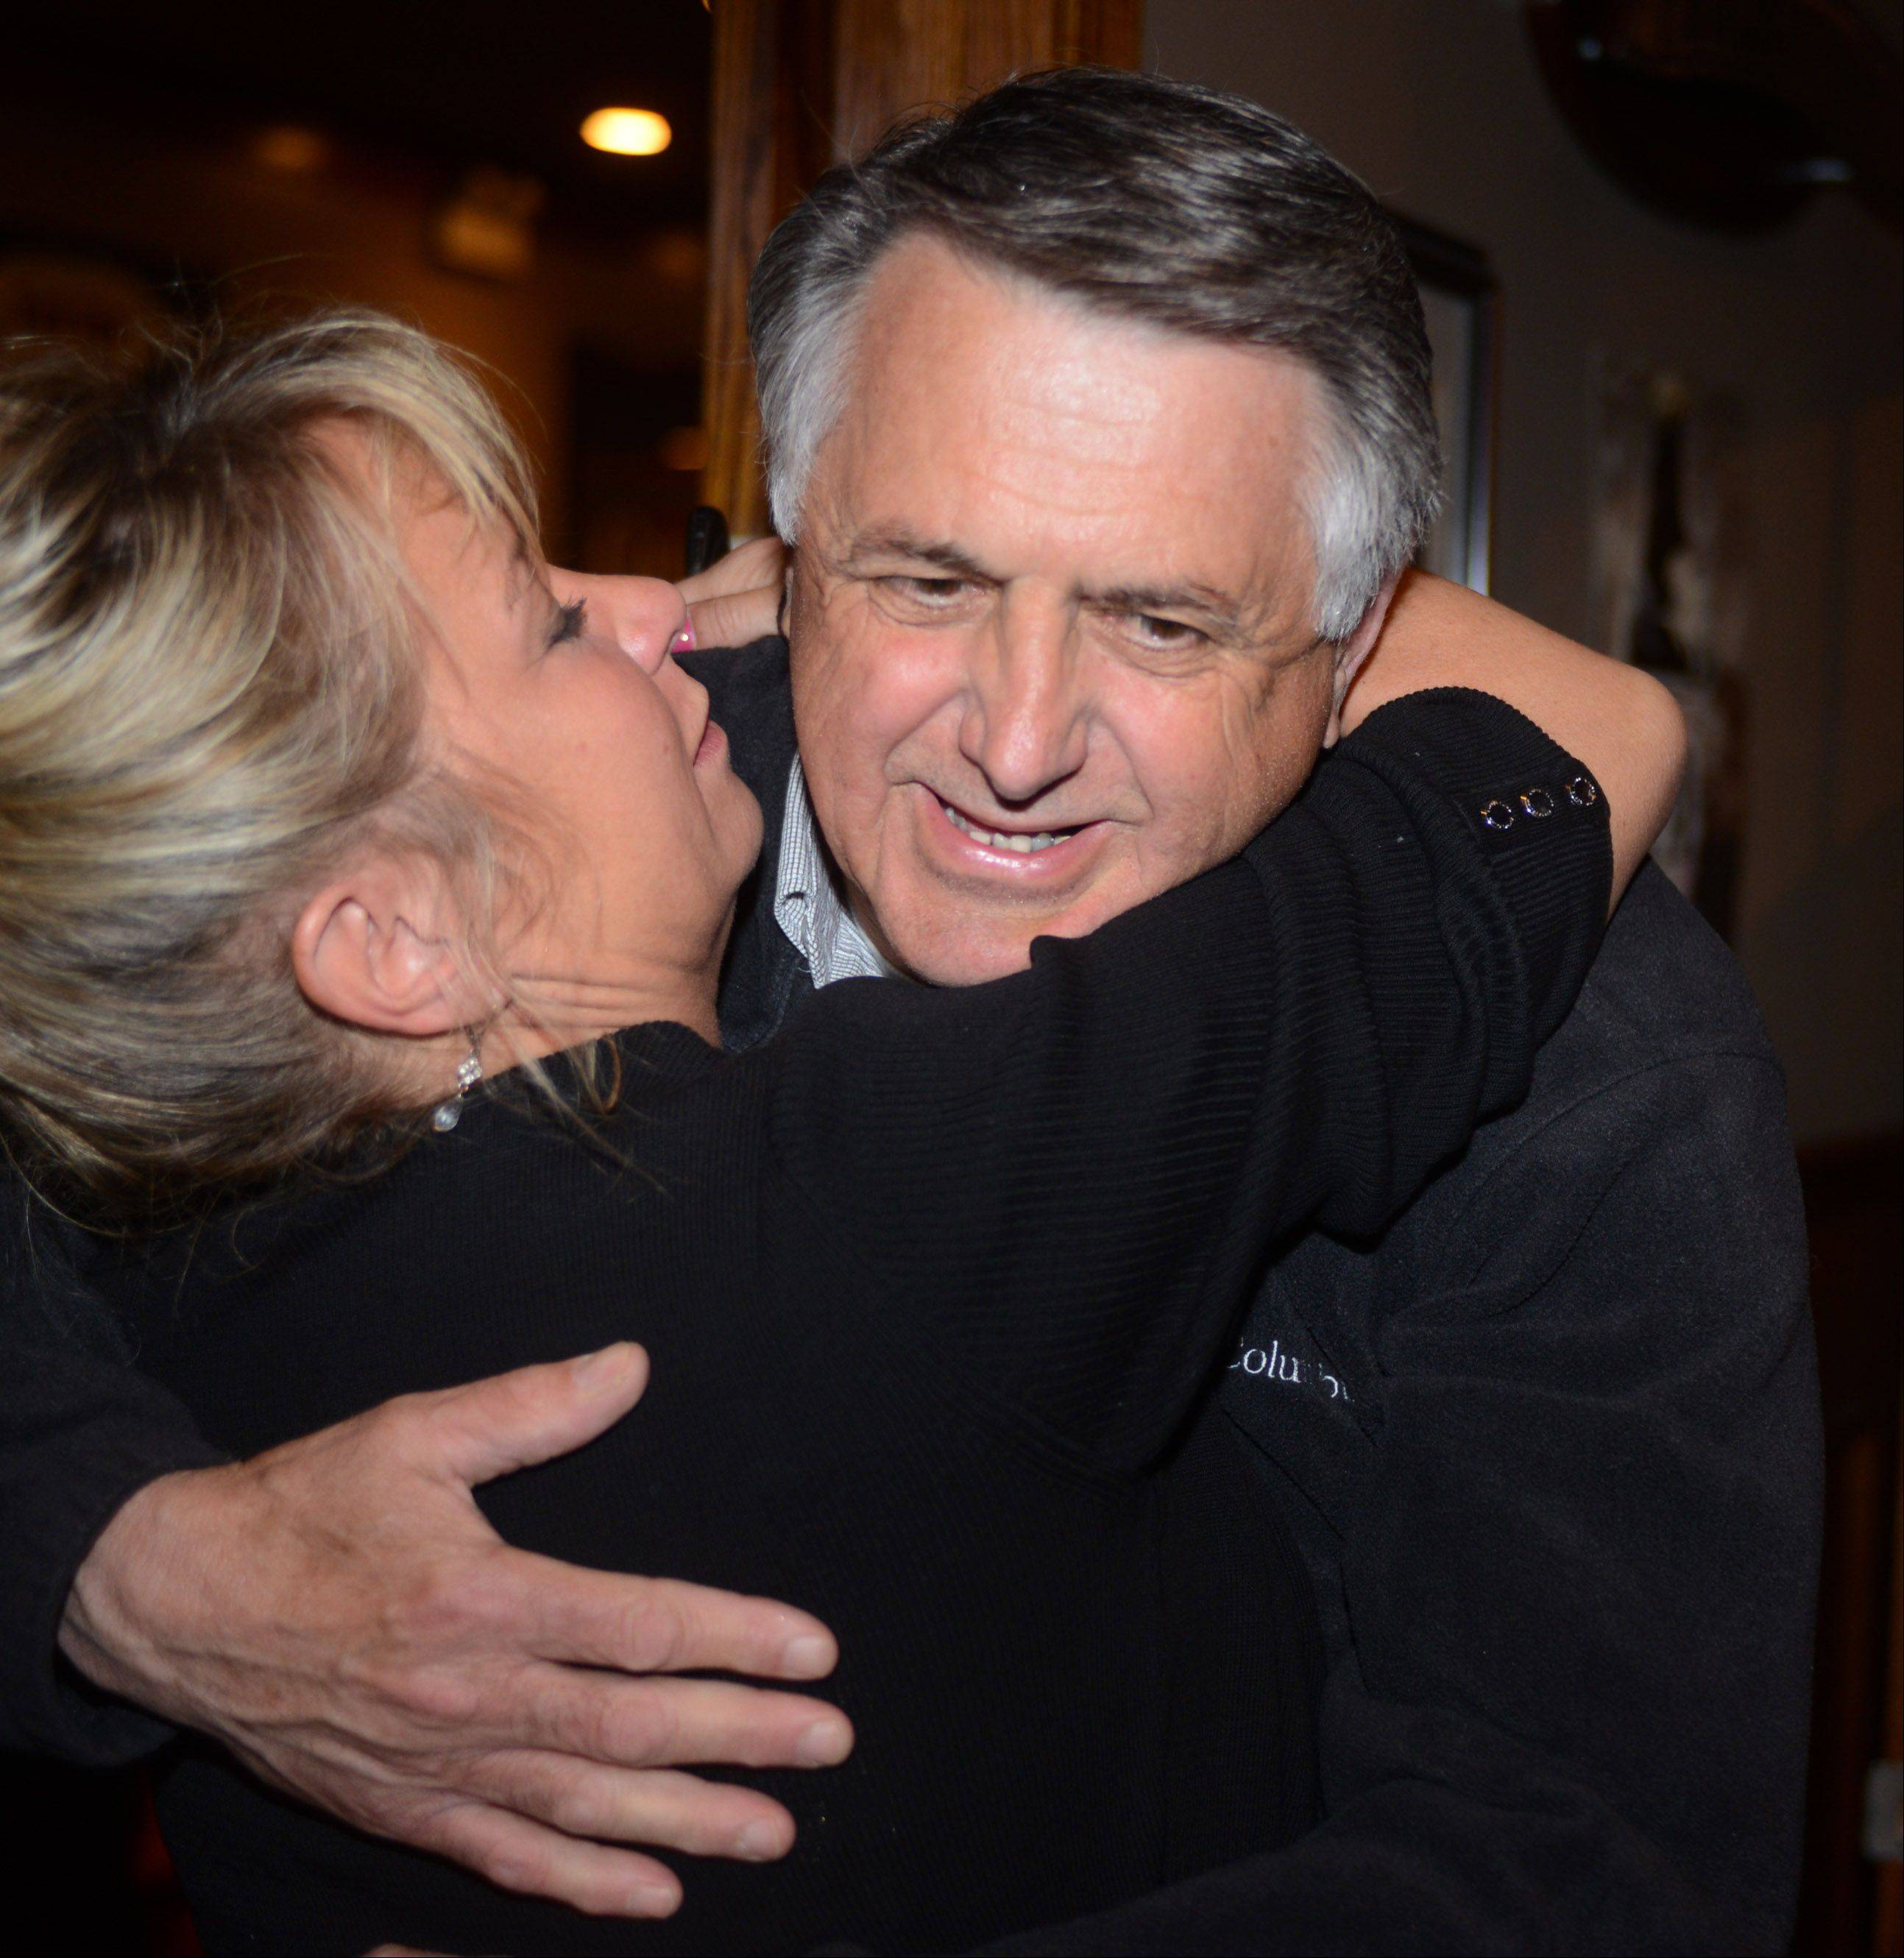 Island Lake mayor-elect Charles Amrich gets a hug from supporter Debra Jenkins Tuesday night at his victory party at Sideouts.